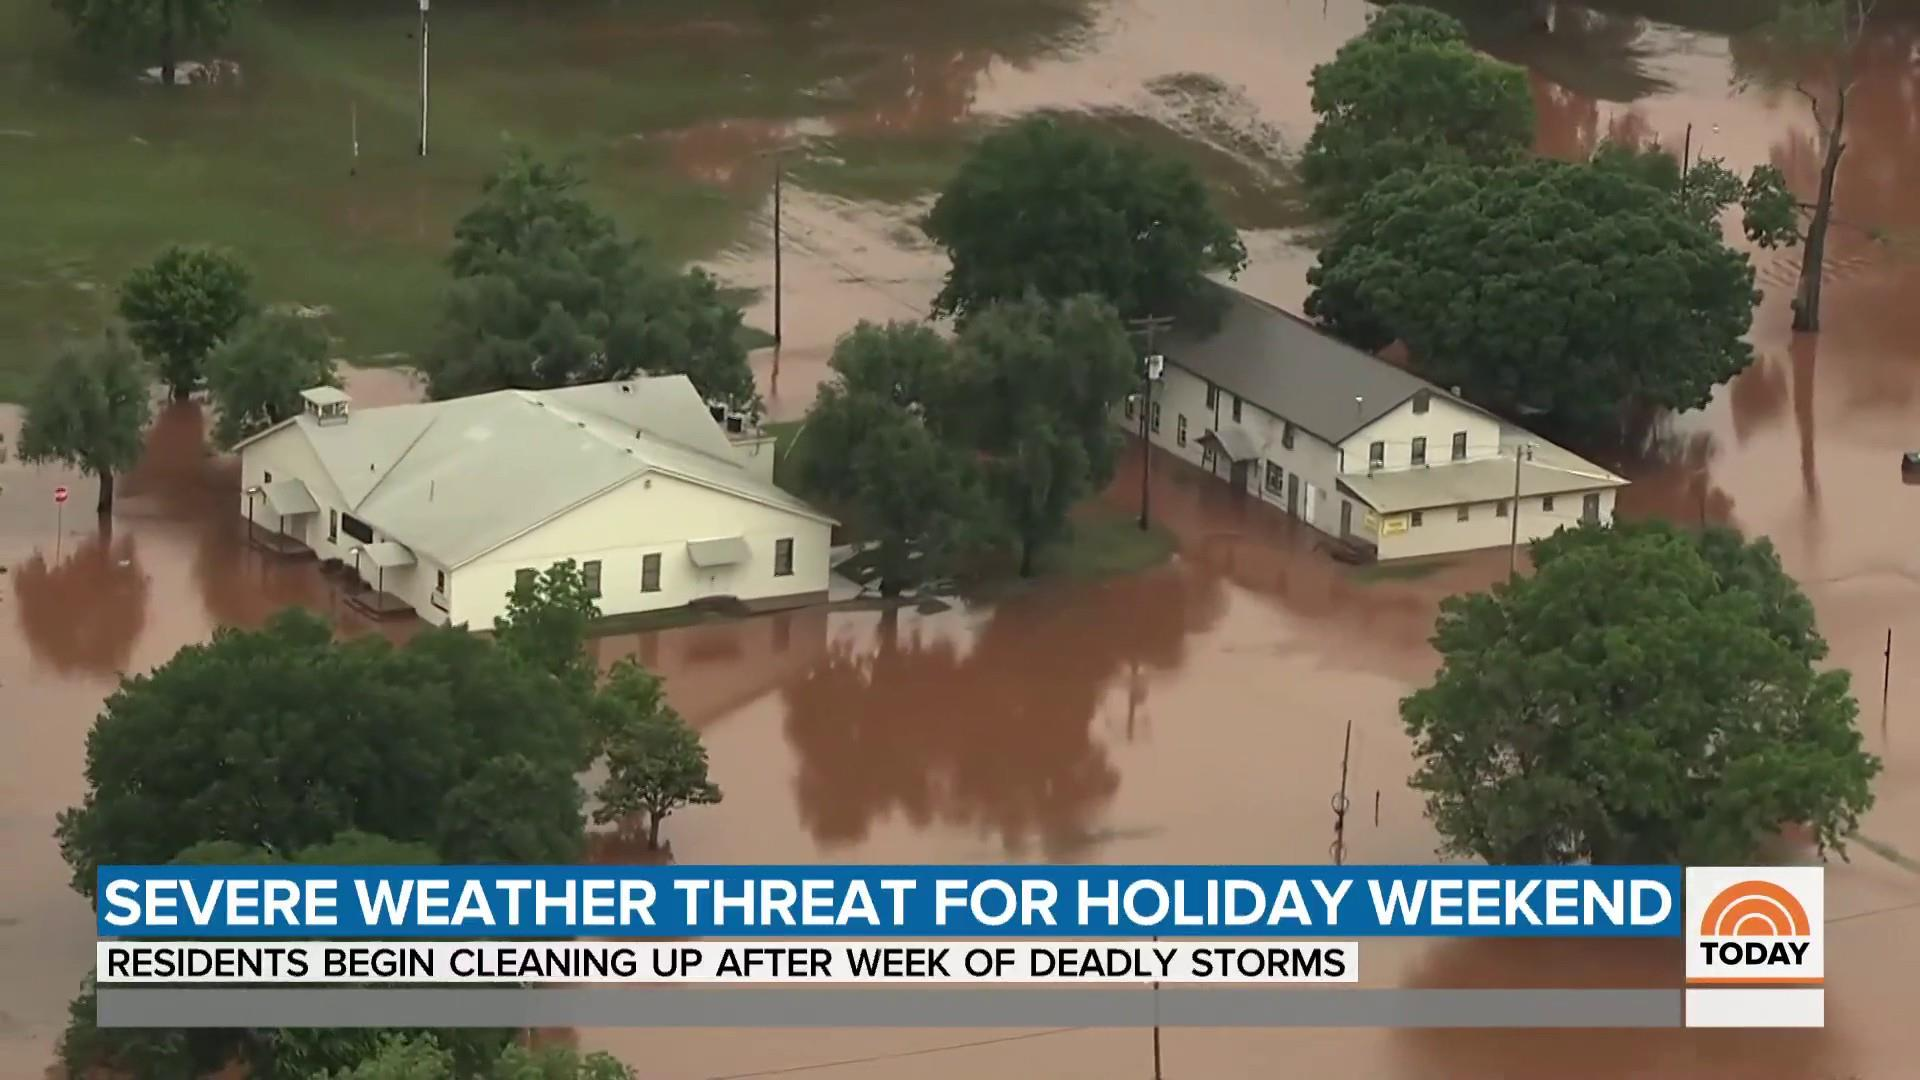 Stormy weather across U.S. as millions try to get away for the holiday weekend